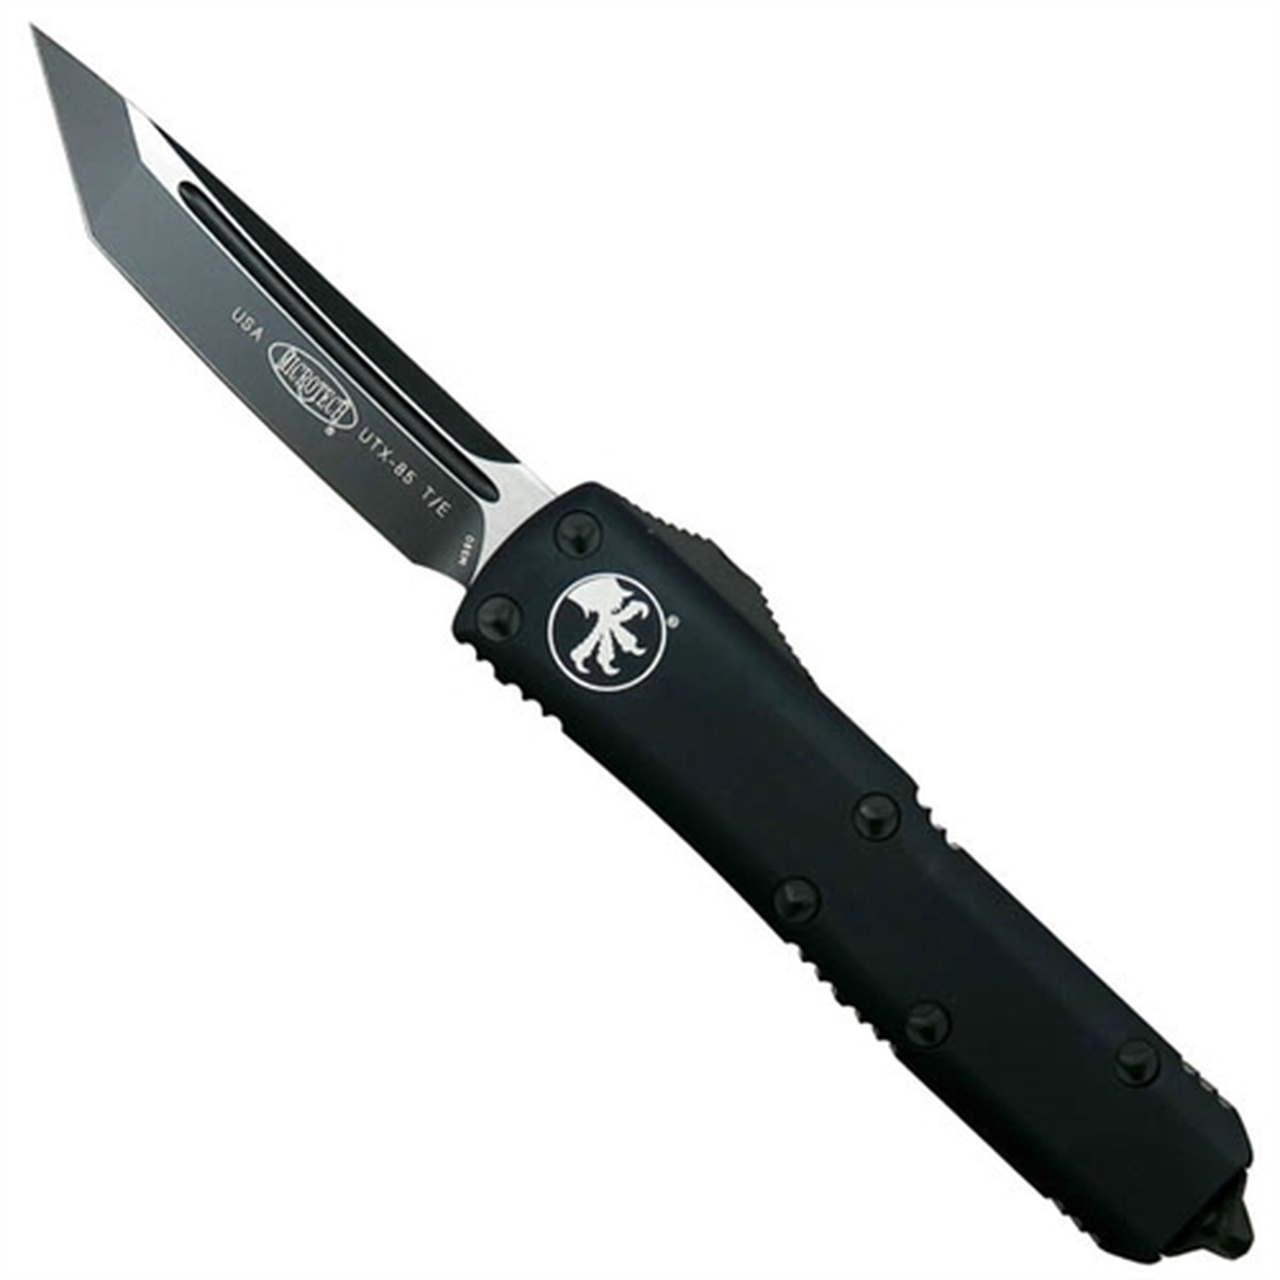 Microtech UTX-85 T/E Black Tactical Standard